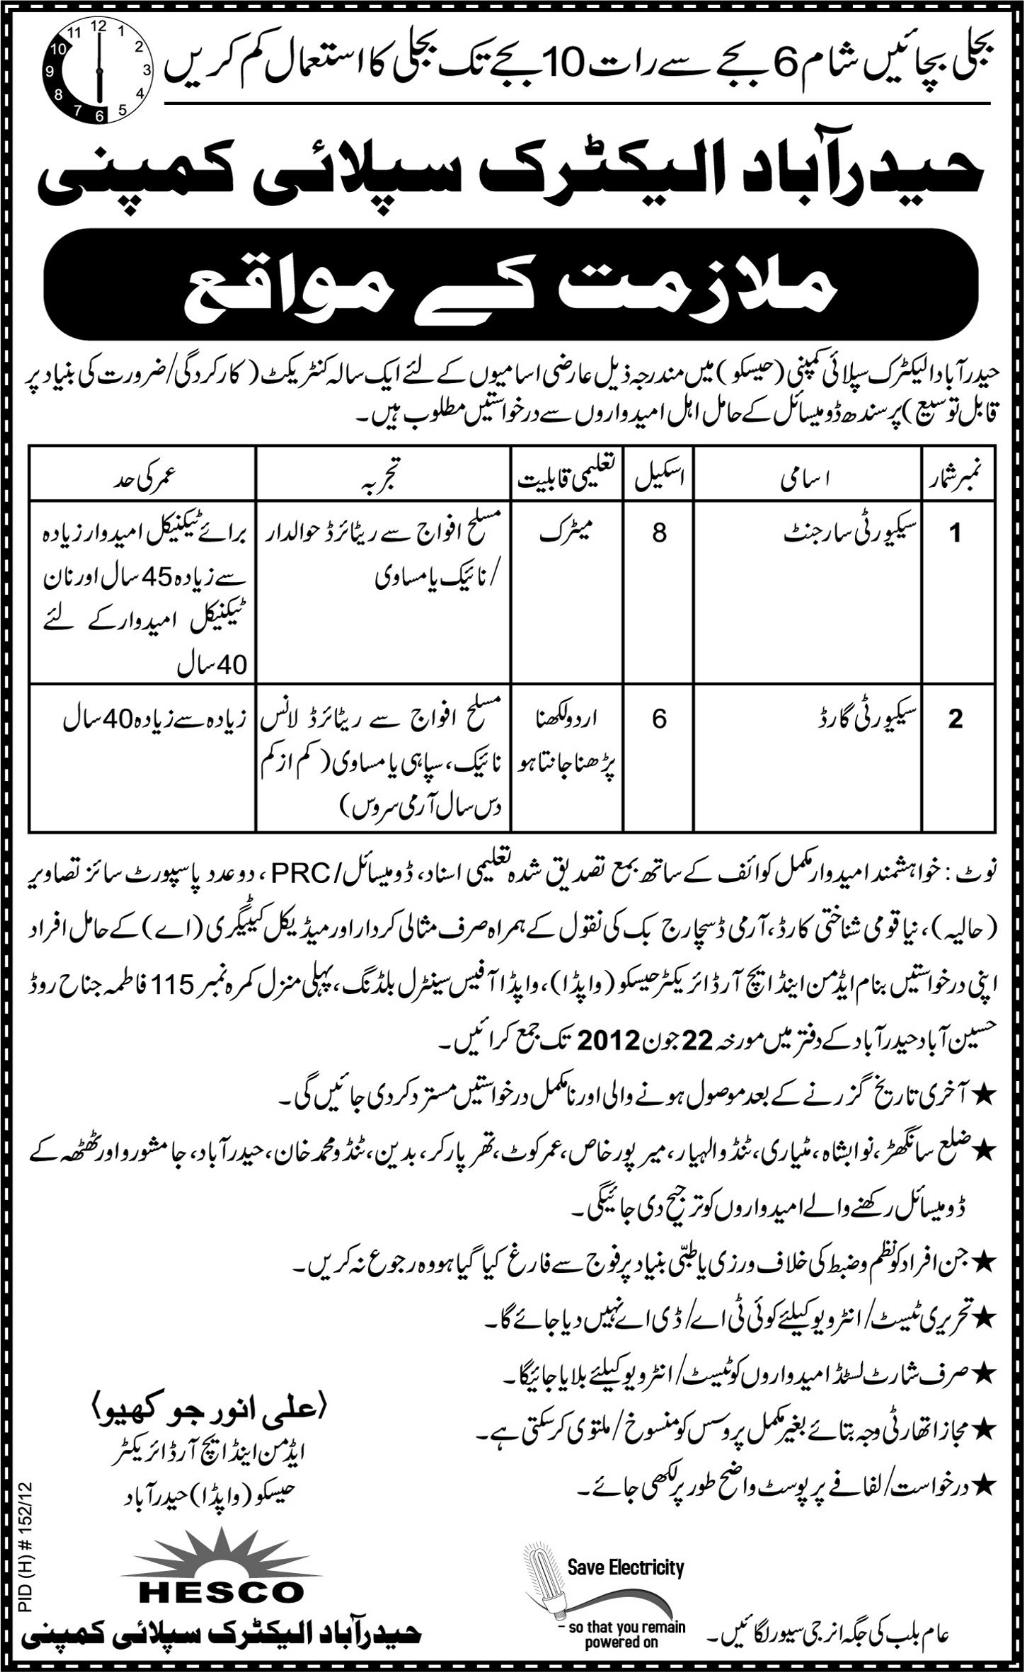 Security Staff Required at HESCO (Hyderabad Electric Supply